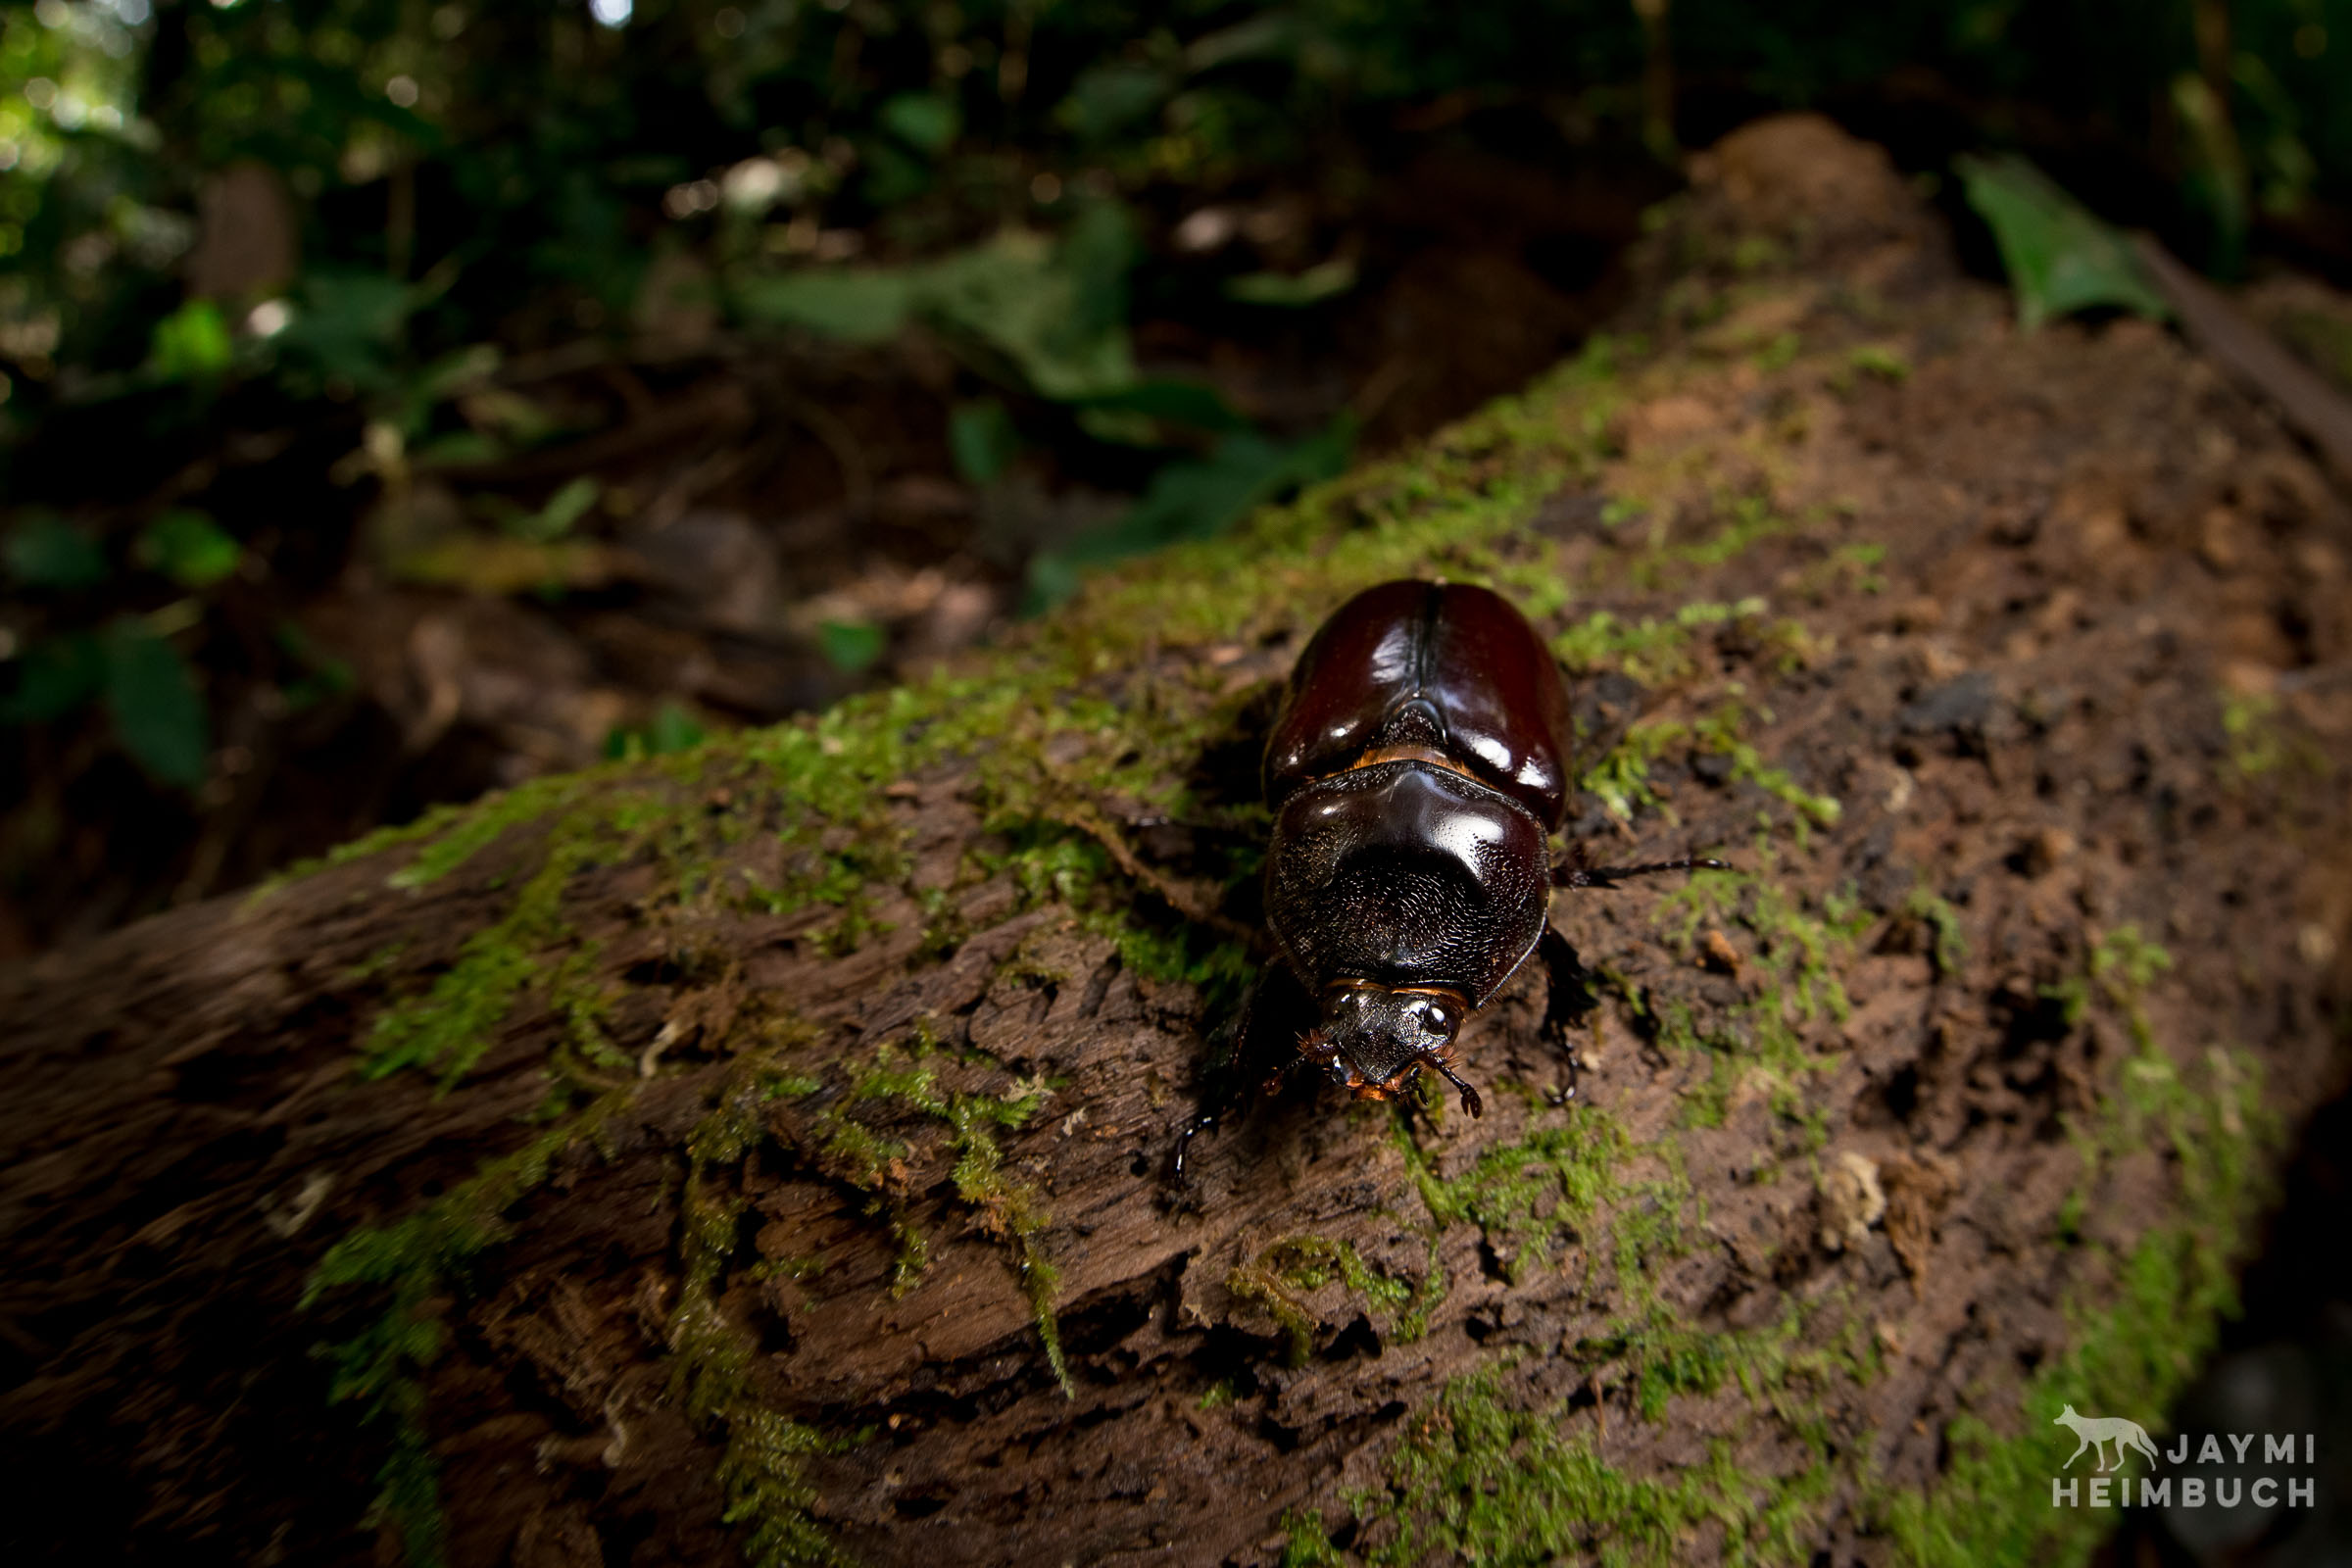 beetle on log, costa rica